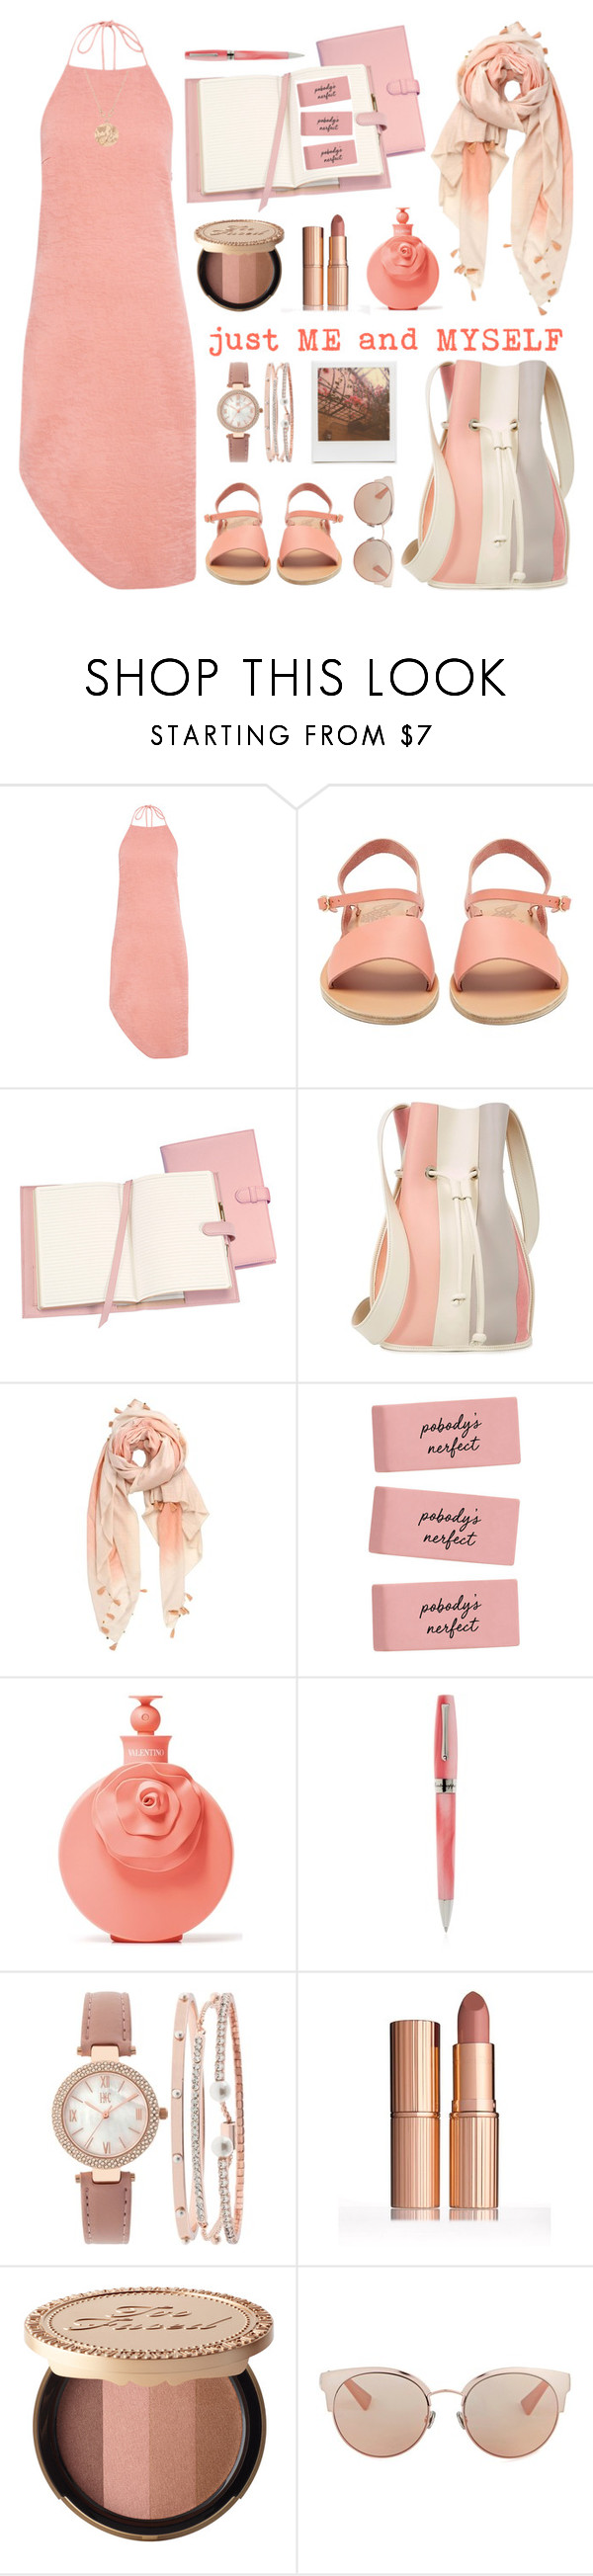 """""""Sweat 🍑"""" by hmytran ❤ liked on Polyvore featuring C/MEO COLLECTIVE, Ancient Greek Sandals, Royce Leather, 10 Crosby Derek Lam, Michael Stars, Valentino, Impossible Project, Montegrappa, INC International Concepts and Too Faced Cosmetics"""